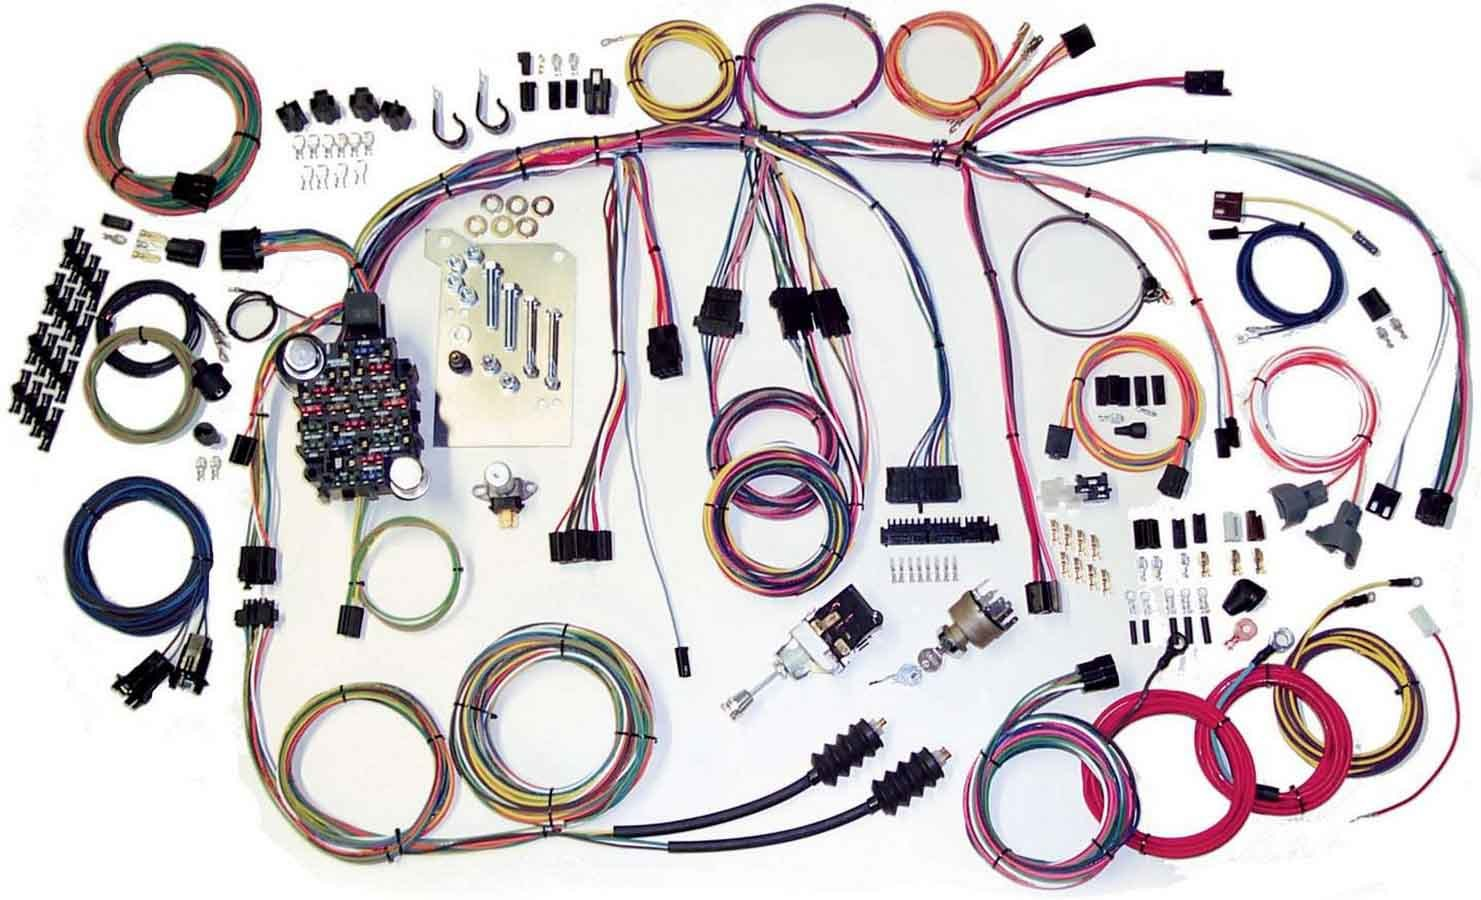 American Autowire 500560 Car Wiring Harness, Classic Update, Complete, Chevy Truck 1960-66, Kit